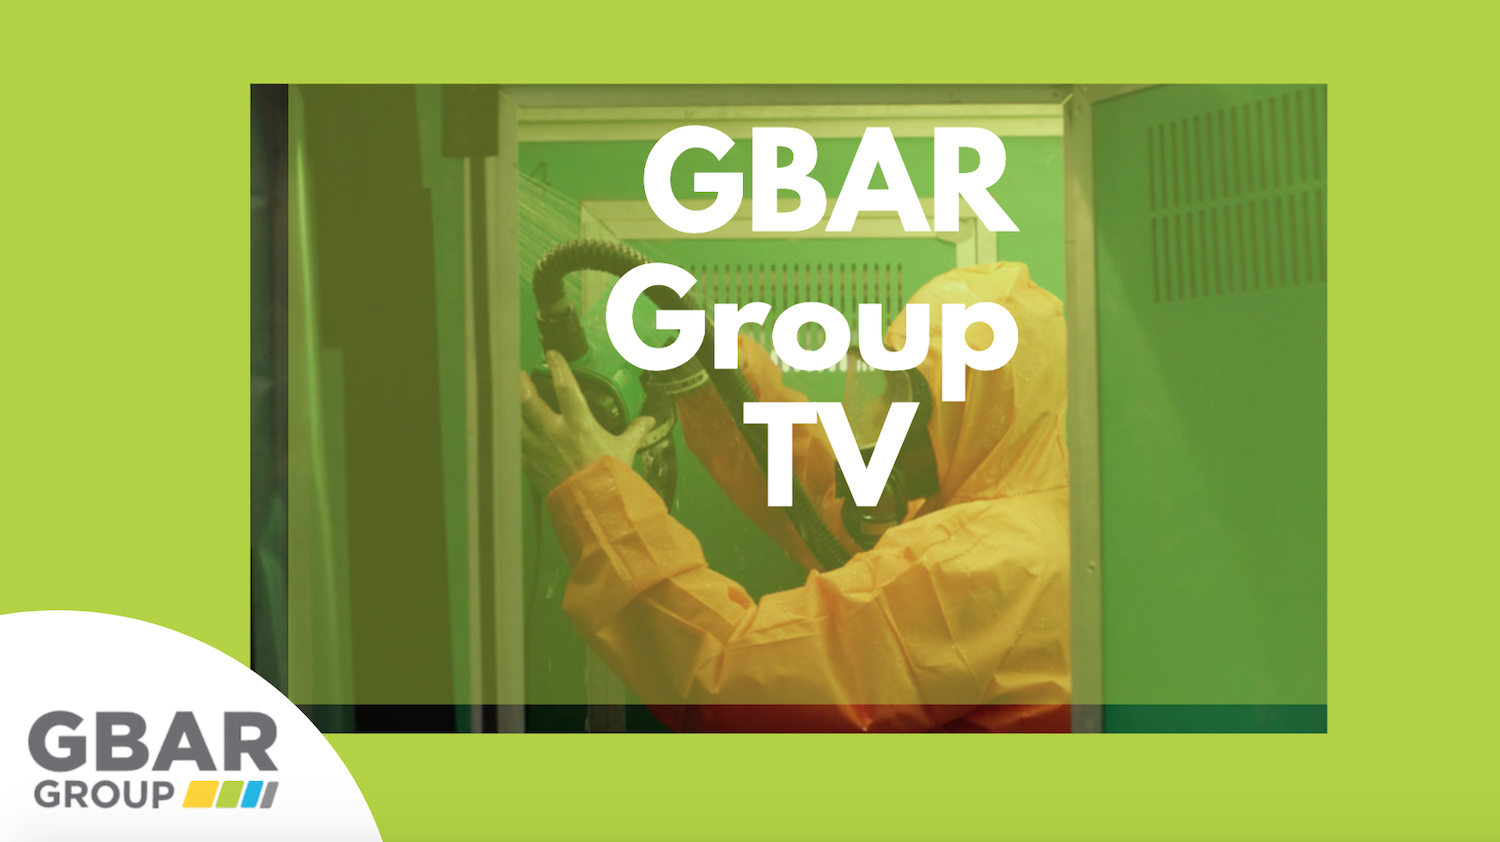 GBAR Group TV Cover Image